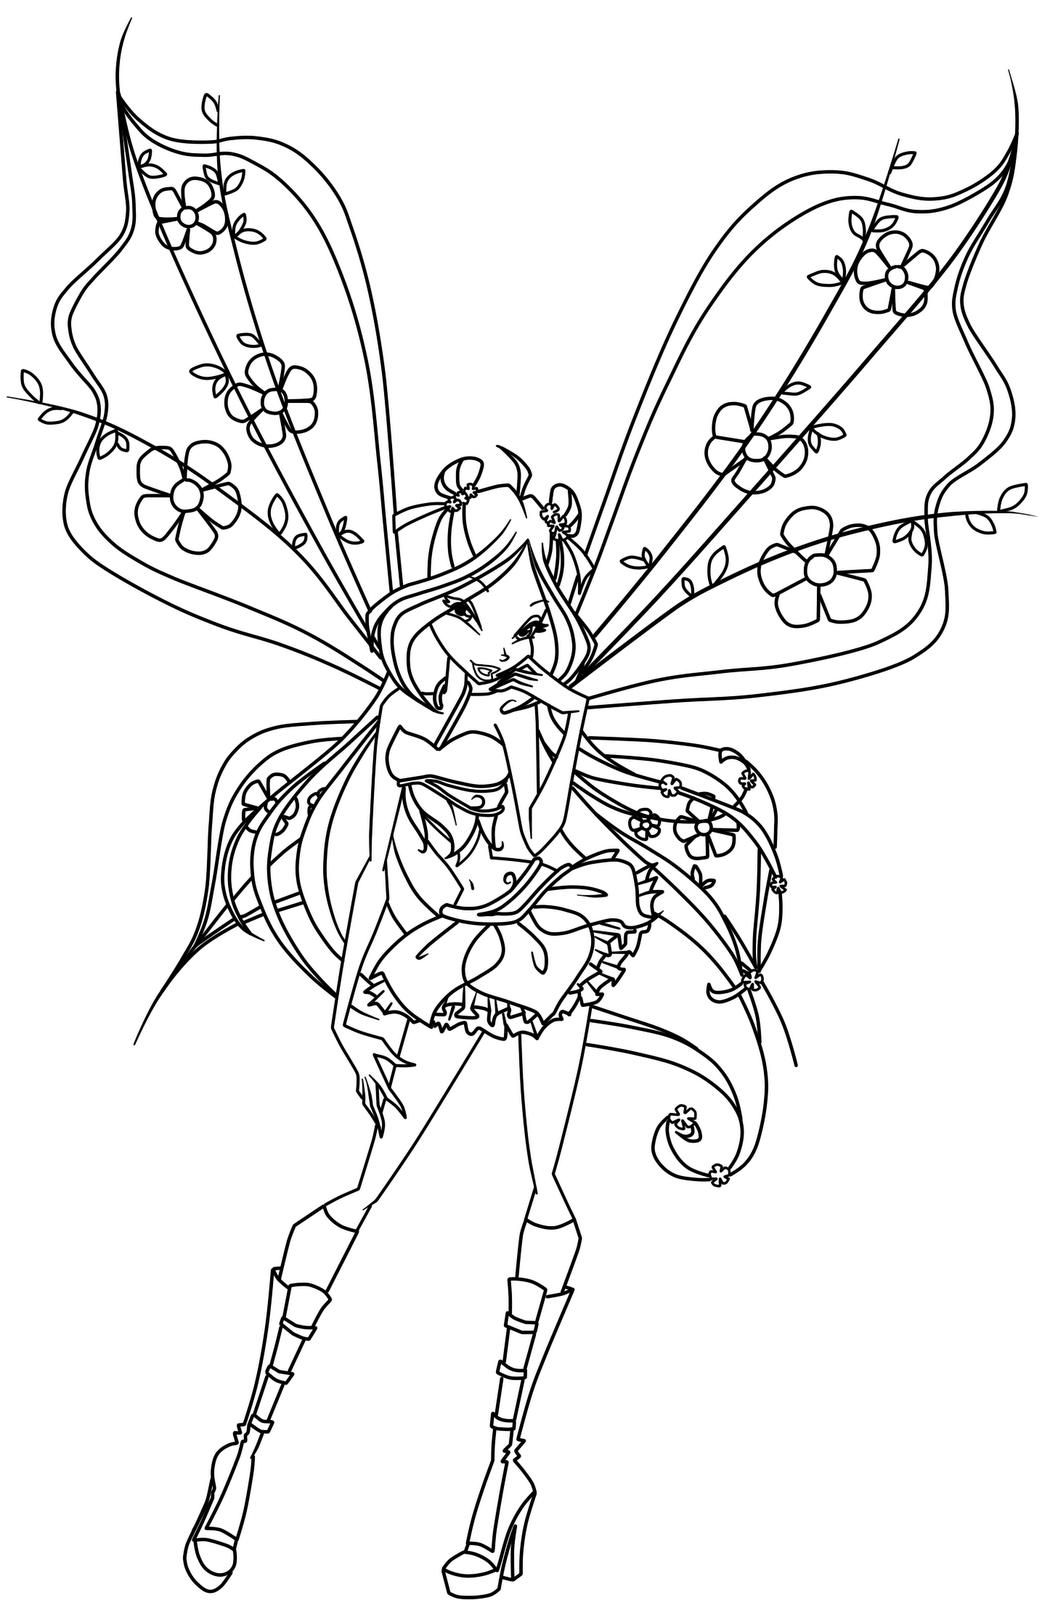 Winx 5 coloriage de winx coloriages pour enfants - Coloriage barbie fee ...